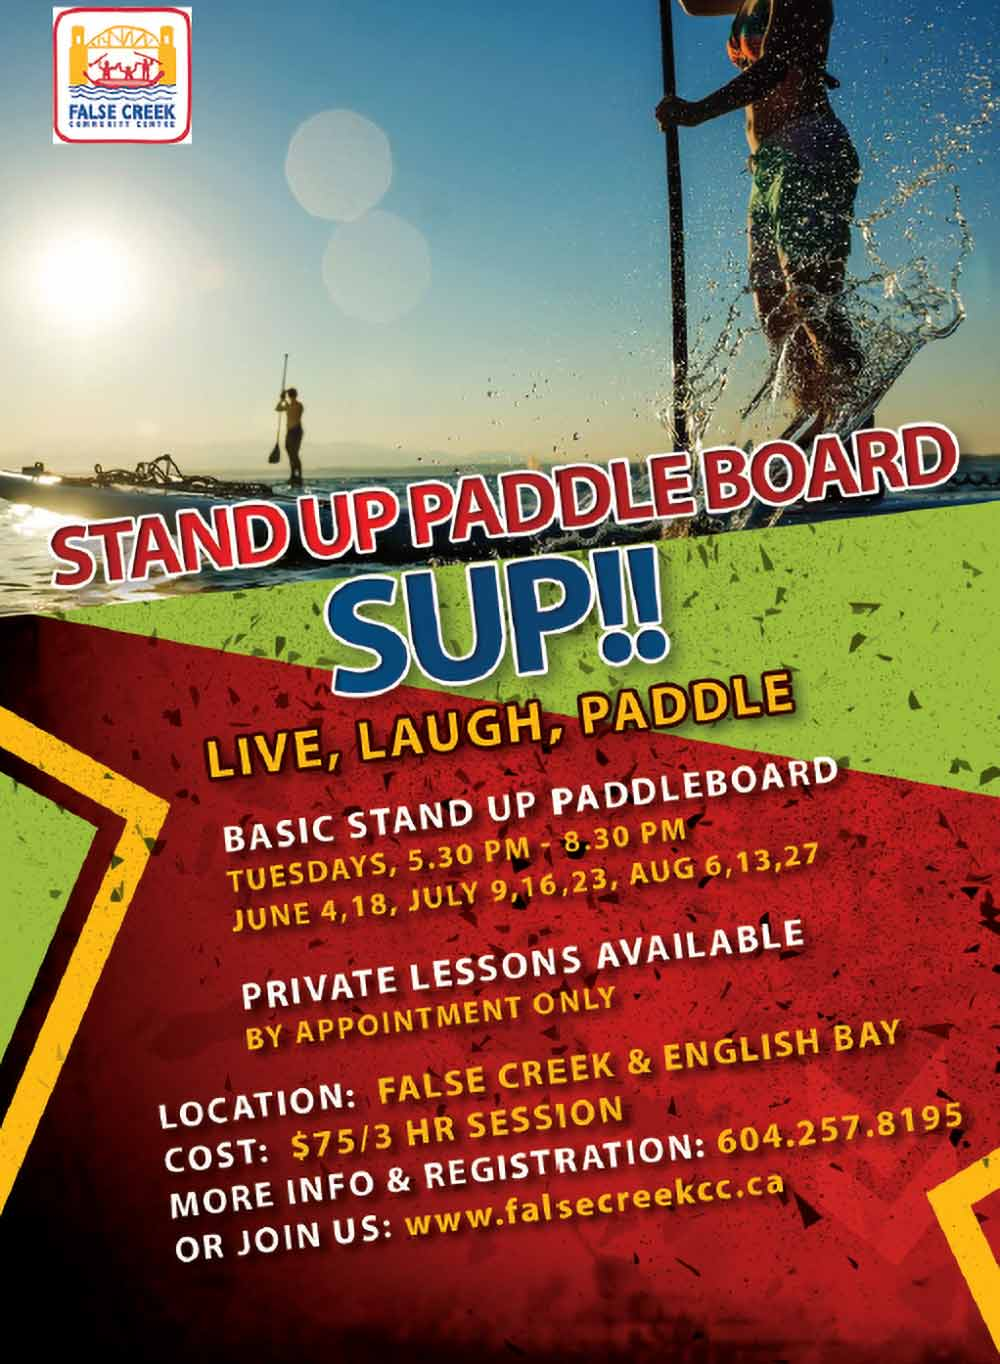 """Learn the basics or get your Instructor certification. Explore the waters of English Bay and stopping at one of the local beaches to take in the scenery and have a rest. Enjoy the best Vancouver has to offer. Basic Stand Up Paddle Board (SUP) Instructor Course (16+ yrs) The Basic SUP Instructor course is designed to provide national certification in the instruction and administration of the Basic SUP program. It is the entry point into the Paddle Canada SUP instructor program. Prerequisites: At least 16 years of age, Current Paddle Canada membership and Provincial/Territorial membership, Paddle Canada Advanced Flatwater SUP skills certification, or equivalent skills andknowledge, Current certification in Standard First Aid with CPR (14-16 hours), and Candidates are expected have experience beyond that of the Basic SUP skills course. Sa/Su Jun 1-Jun 2 8:00 AM-3:30 PM 215162 $325/2 sess REGISTER HERE Basic Stand Up Paddleboard (SUP) Course (16+ yrs) Our comprehensive 3-hour lesson takes you through every aspect of SUP. Beginning in the calm waters of Alderbay, we'll cover all the basics including; getting familiar with the equipment, safety awareness and on-water etiquette, water entry, proper stance and positioning on the board, and efficient paddling techniques. Once everyone is comfortable, we'll be off exploring the waters of English Bay and stopping at one of the local beaches to take in the scenery and have a rest. Successful participants will receive the """"Basic Stand Up Paddleboard Skills Certificate"""". 5:30 PM-8:30 PM $75/1 sess Tuesday Jun 4-Aug 27 (Various Dates) View Online"""